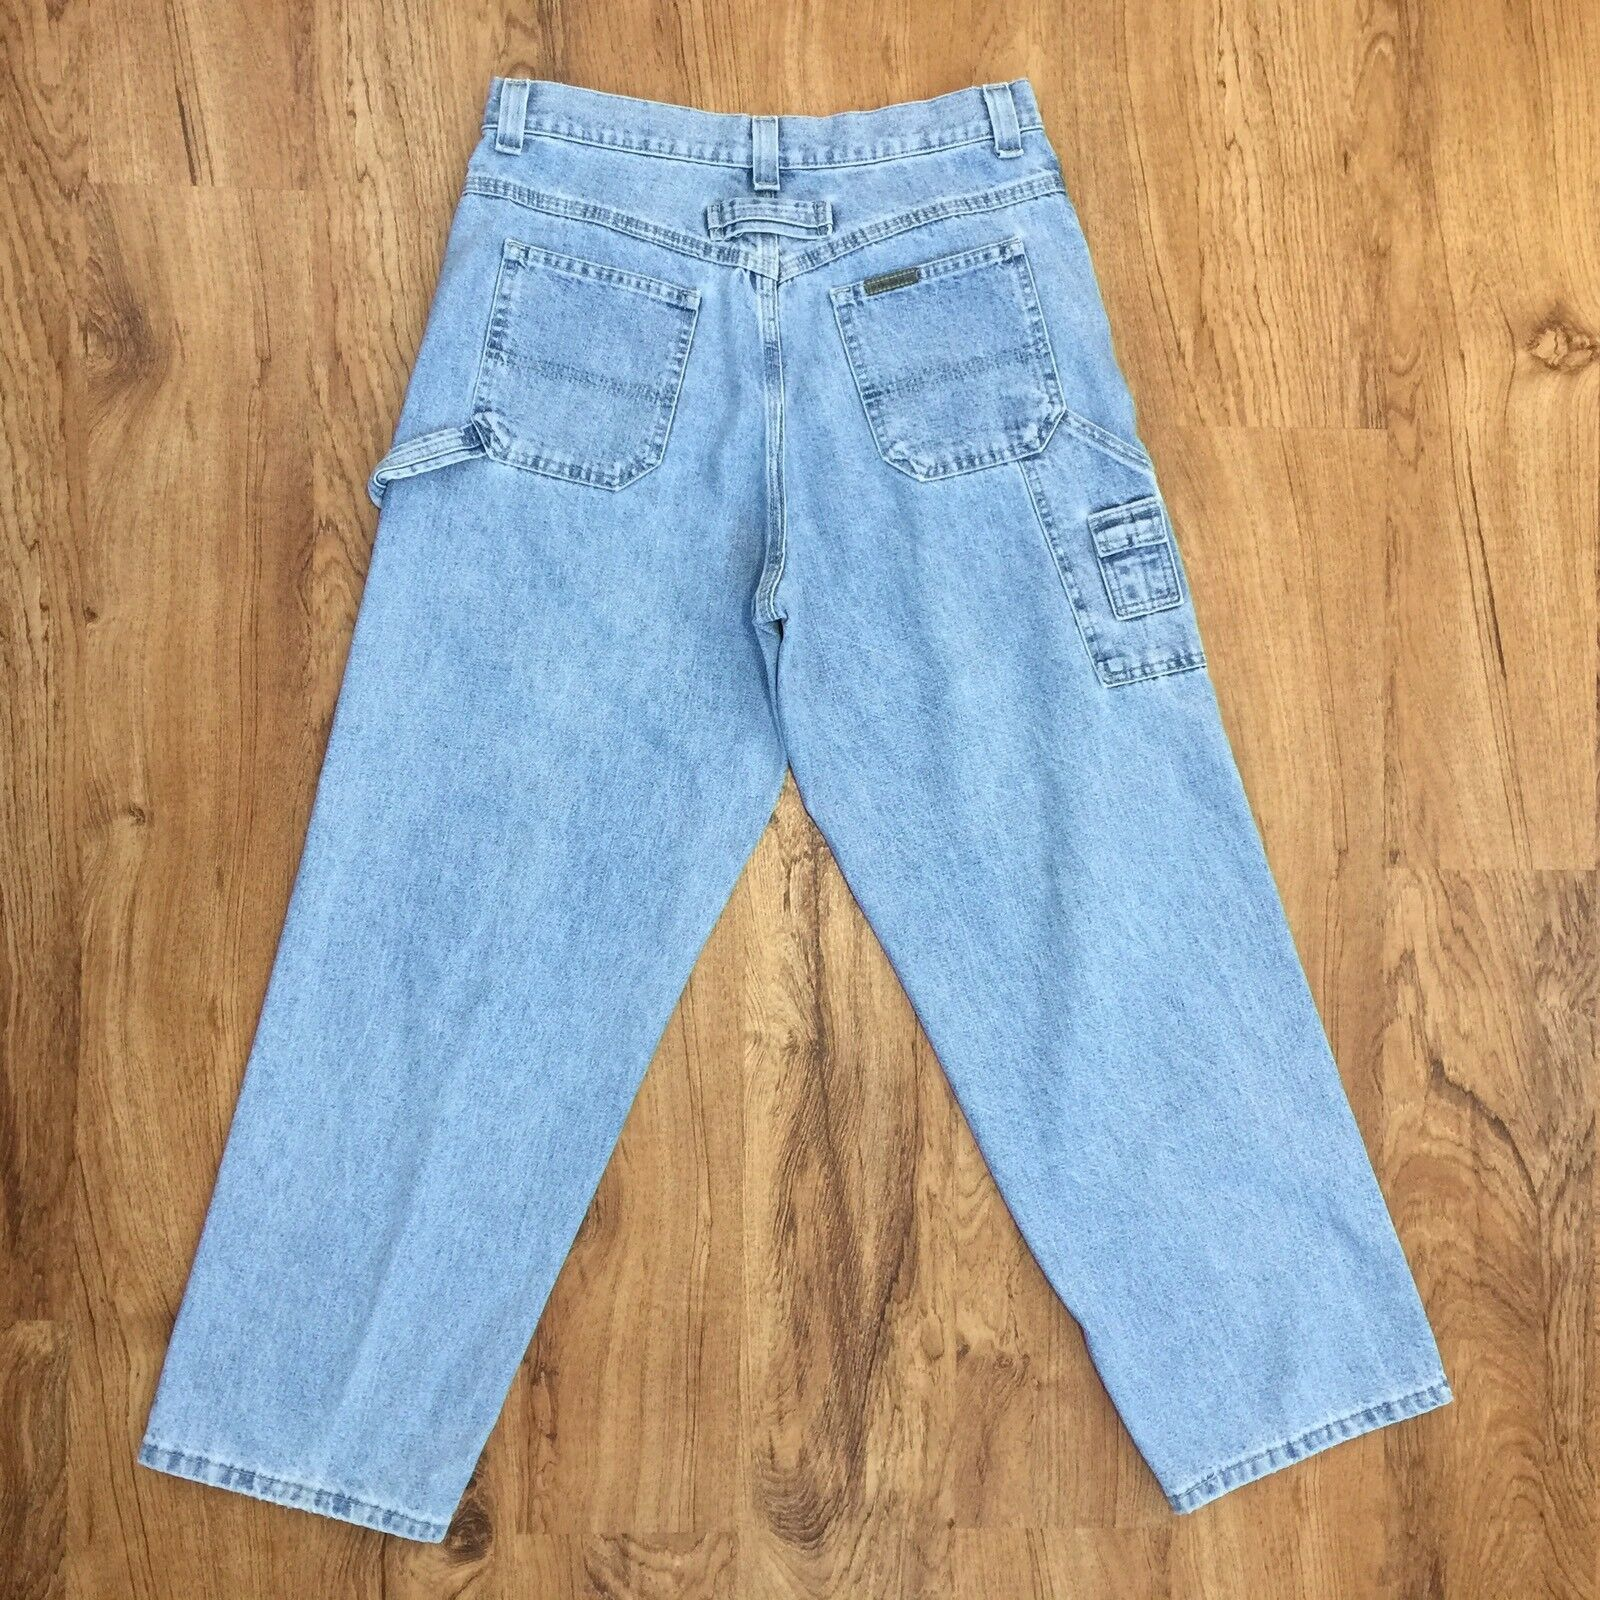 Vtg 90s Riveted By Lee Carpenter Jeans Stonewashed Made In USA Womens Size 10 P